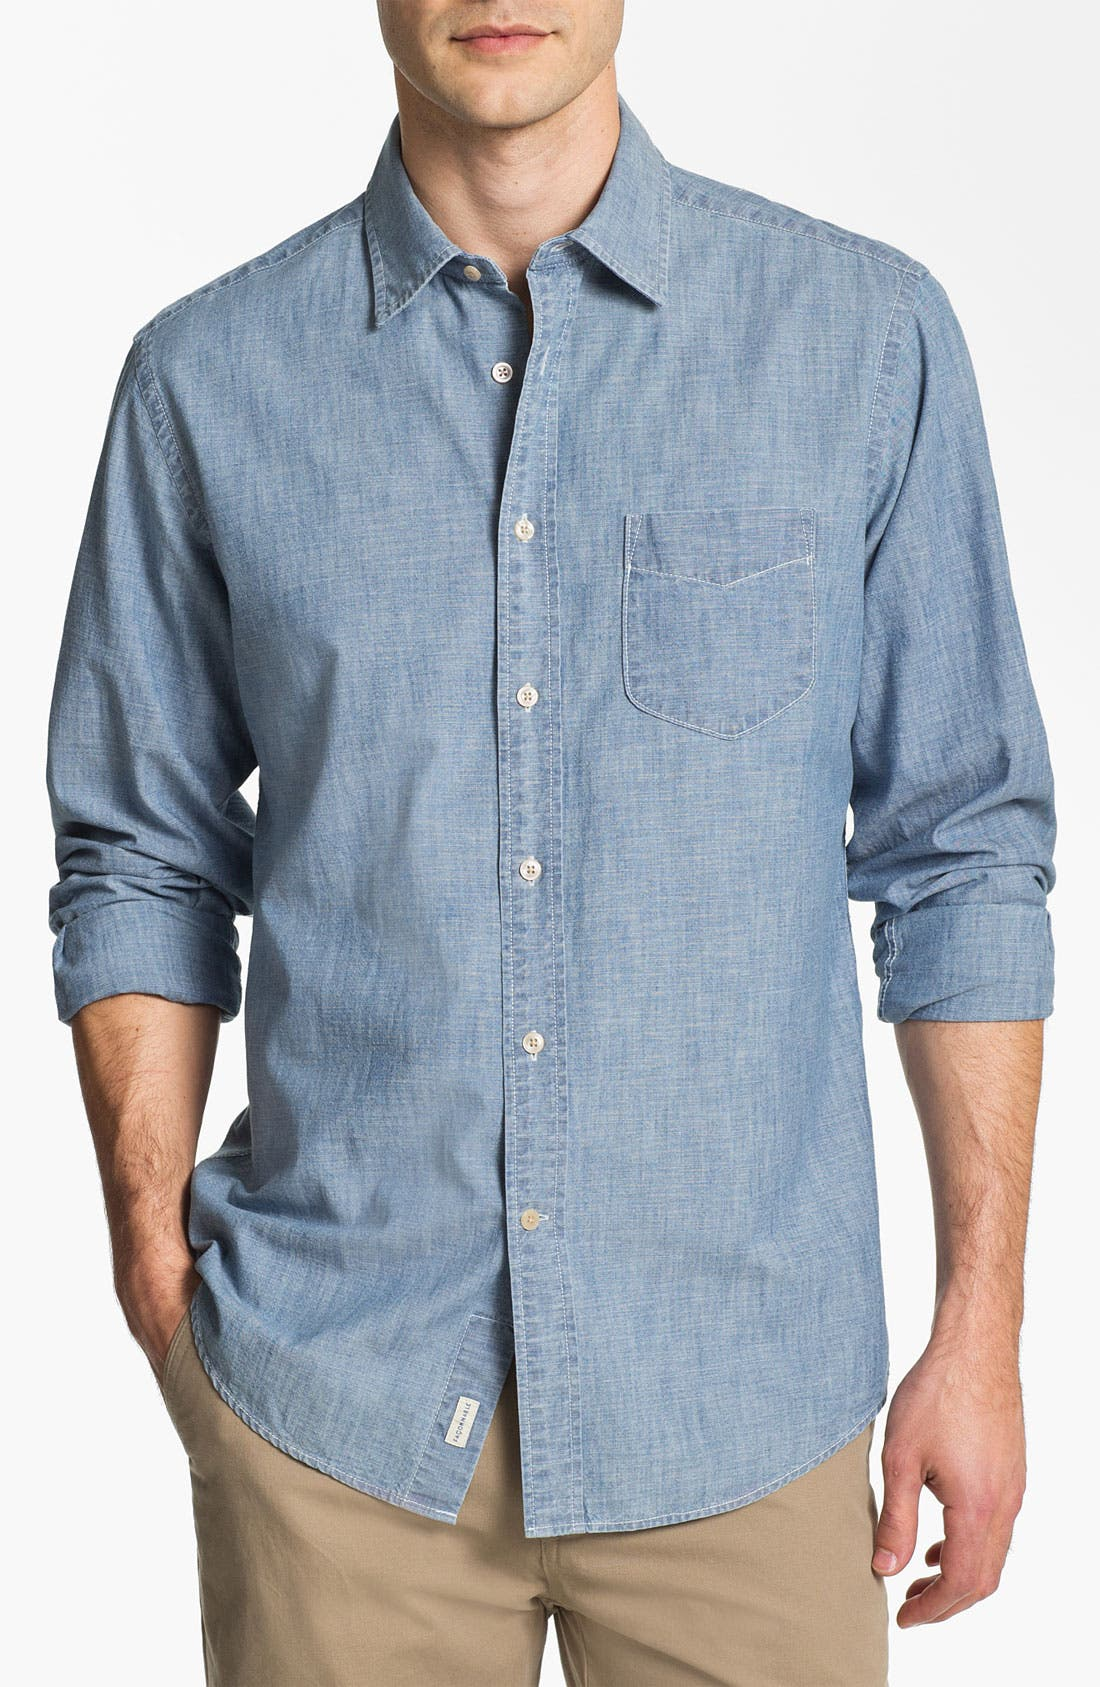 Alternate Image 1 Selected - Façonnable Tailored Denim Regular Fit Chambray Sport Shirt